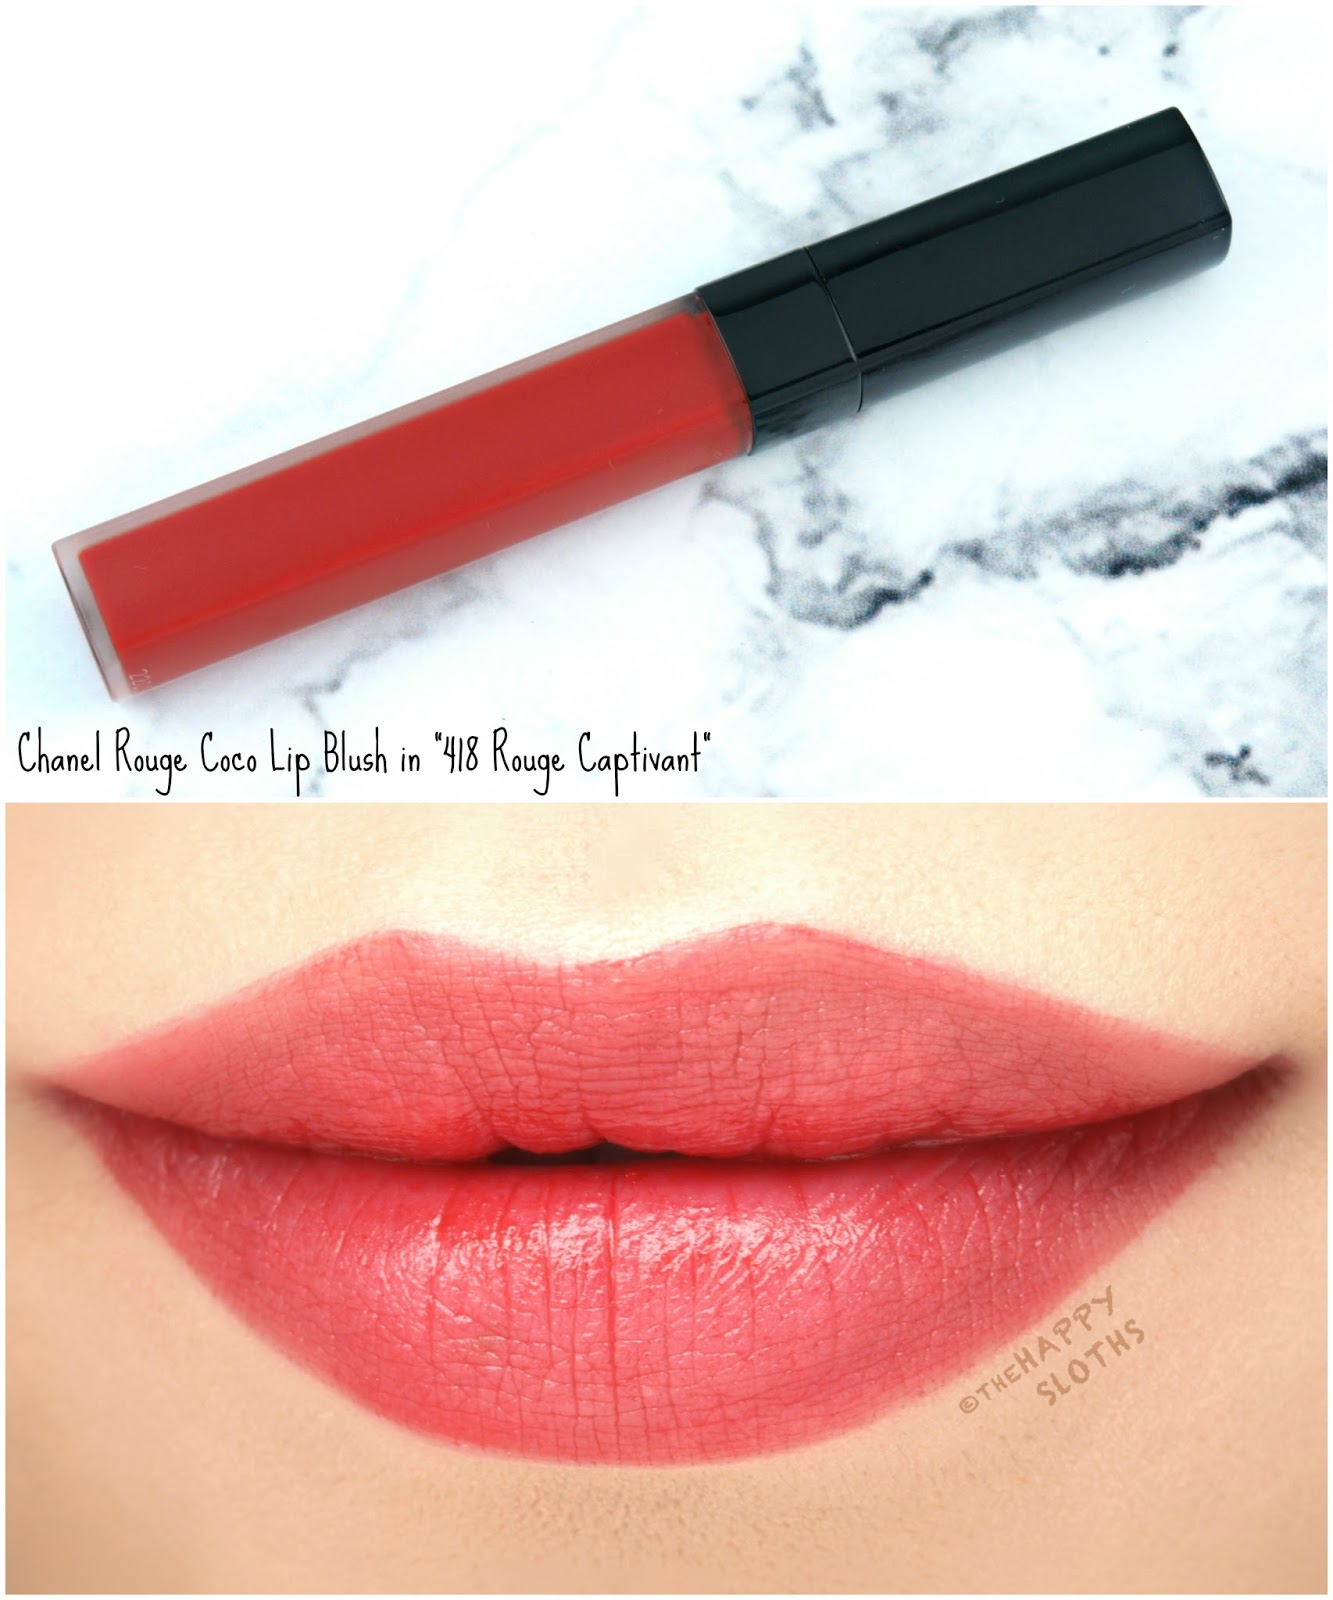 "Chanel Rouge Coco Lip Blush in ""418 Rouge Captivant"": Review and Swatches"